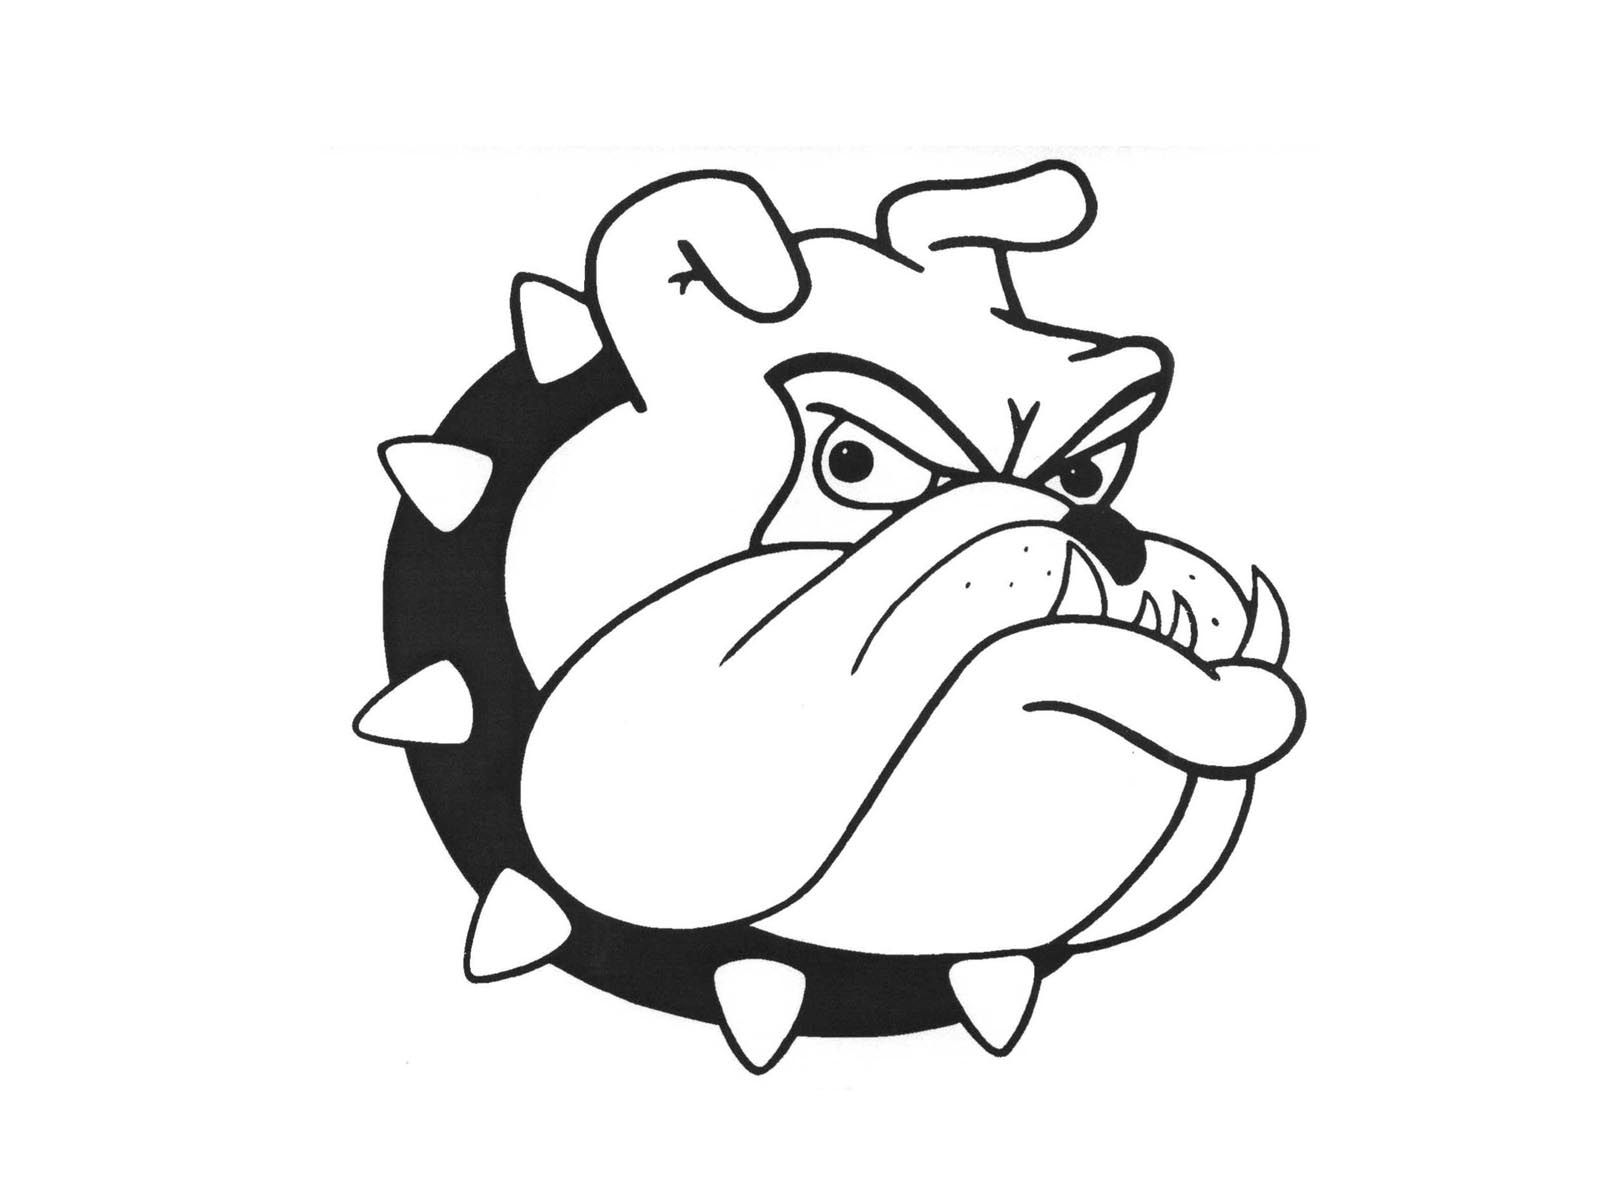 hight resolution of 14 cartoon bulldog images free cliparts that you can download to you